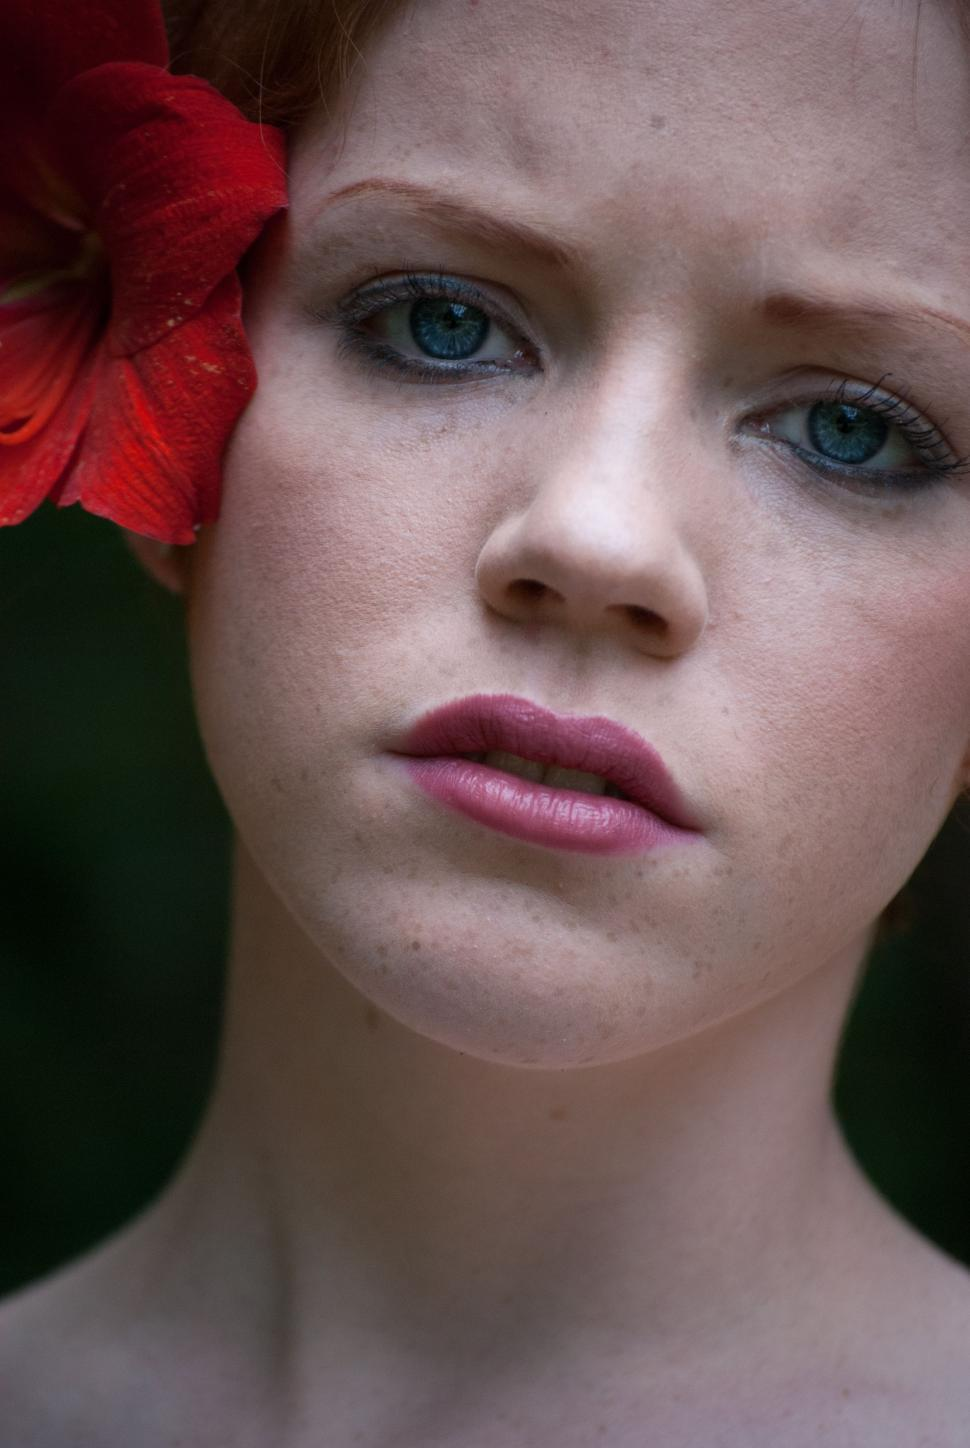 Download Free Stock Photo of Woman Face With Red Flower